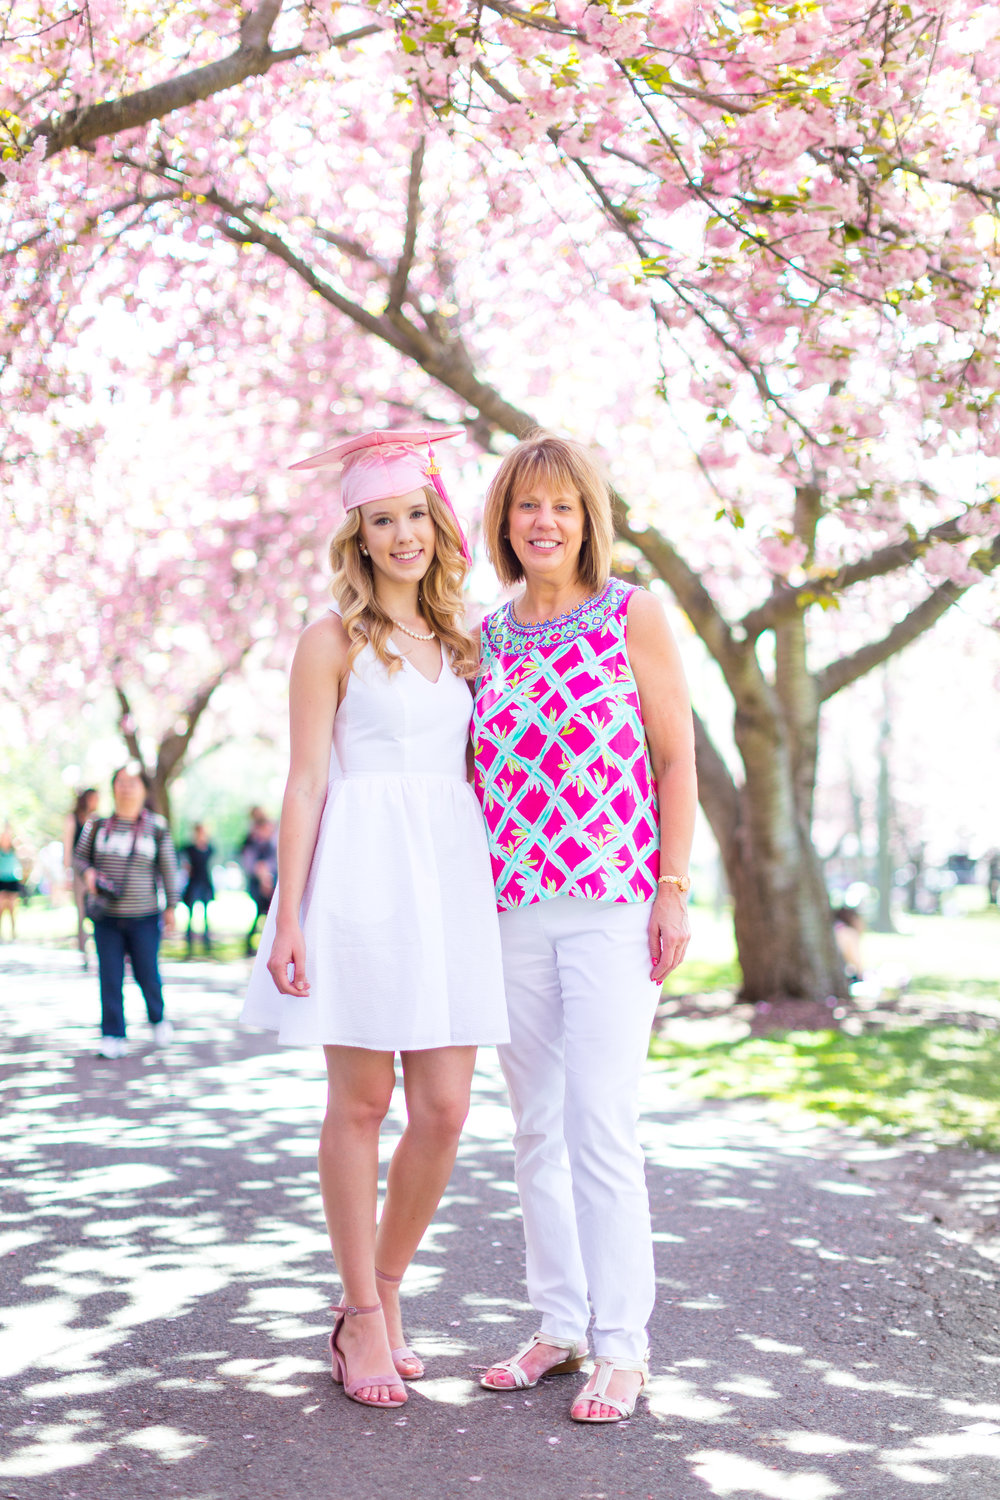 White Graduation Dress Spring Pink Cherry Blossoms NYC-24.jpg